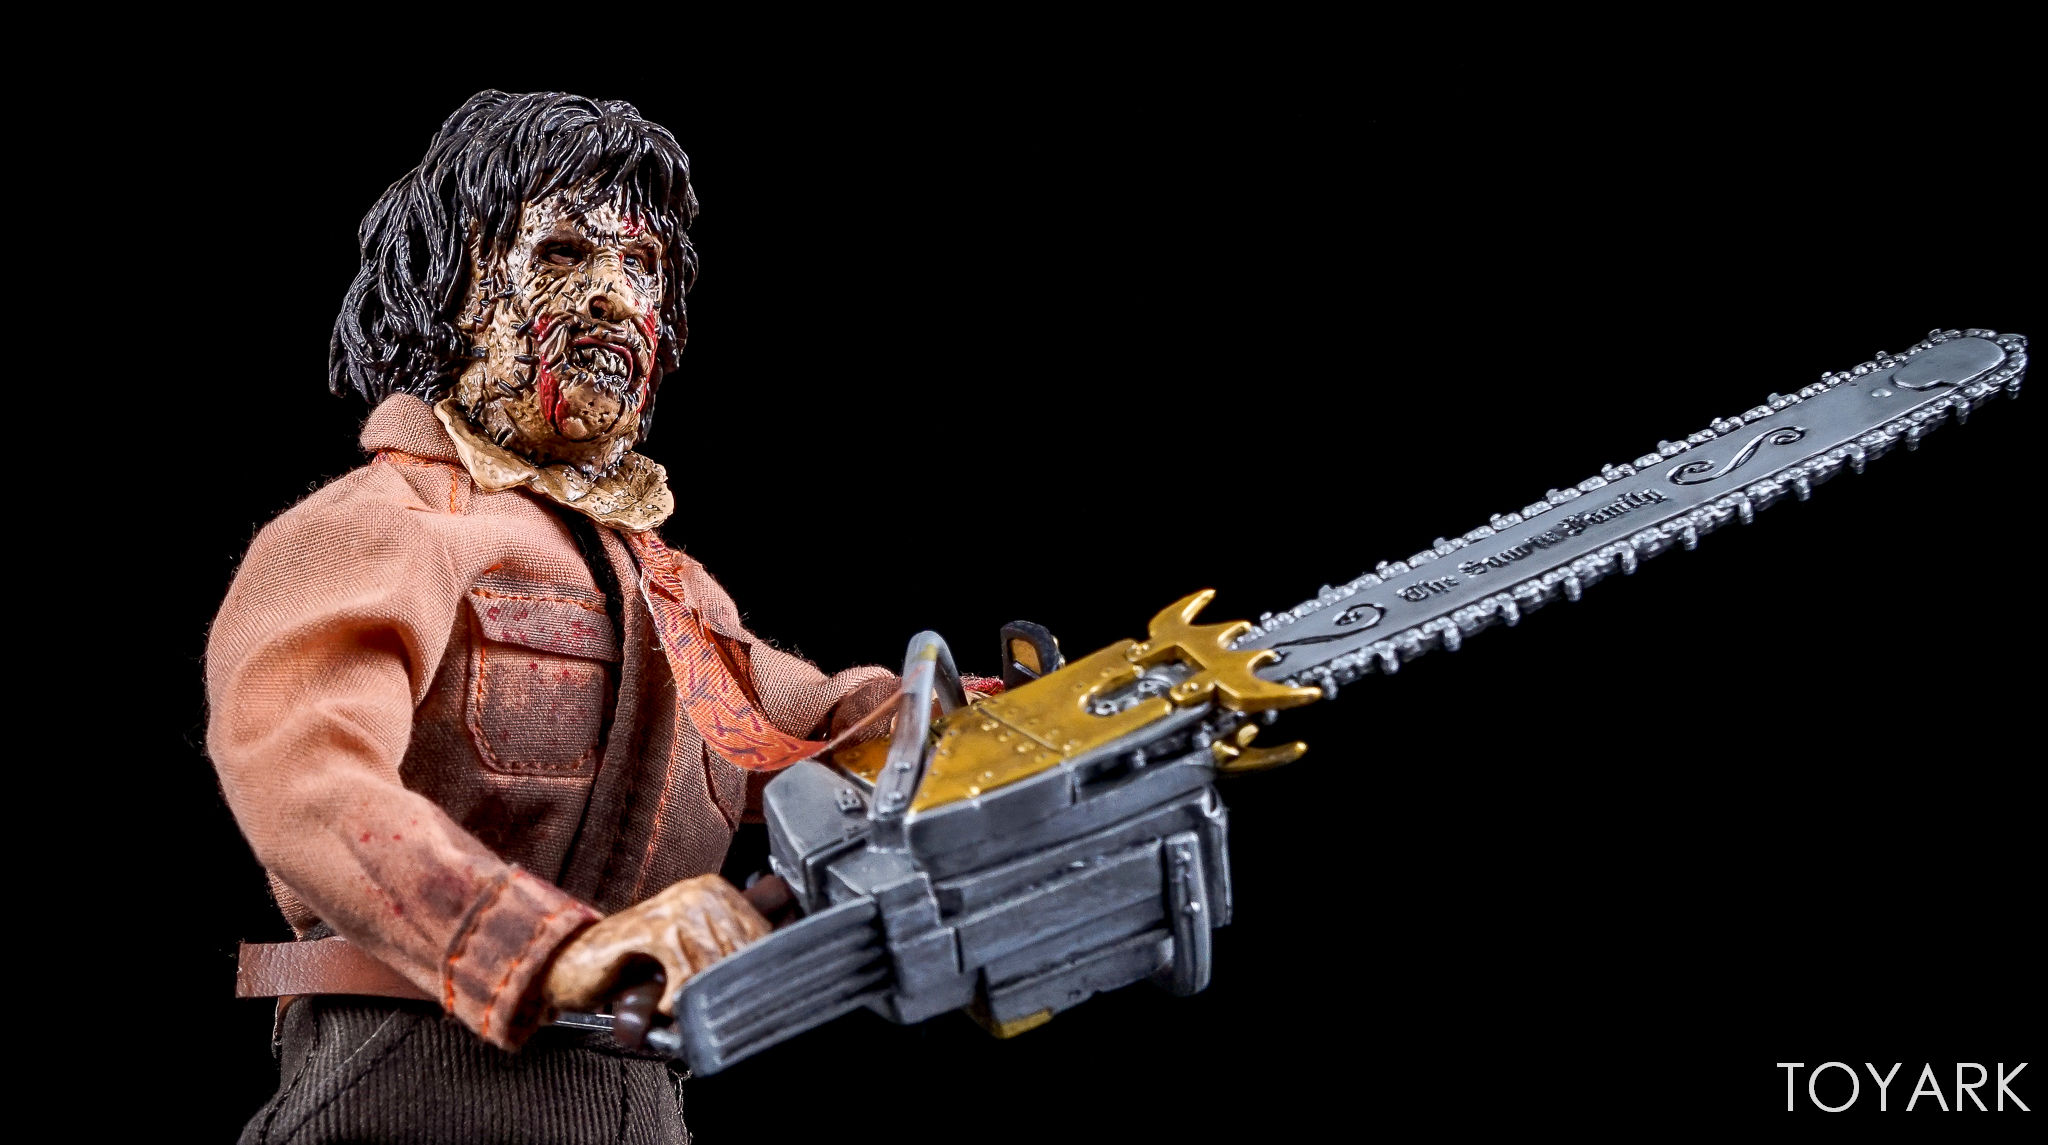 New Texas Chain Saw Massacre Movie and TV Show in the Works?   Texas Chainsaw Massacre